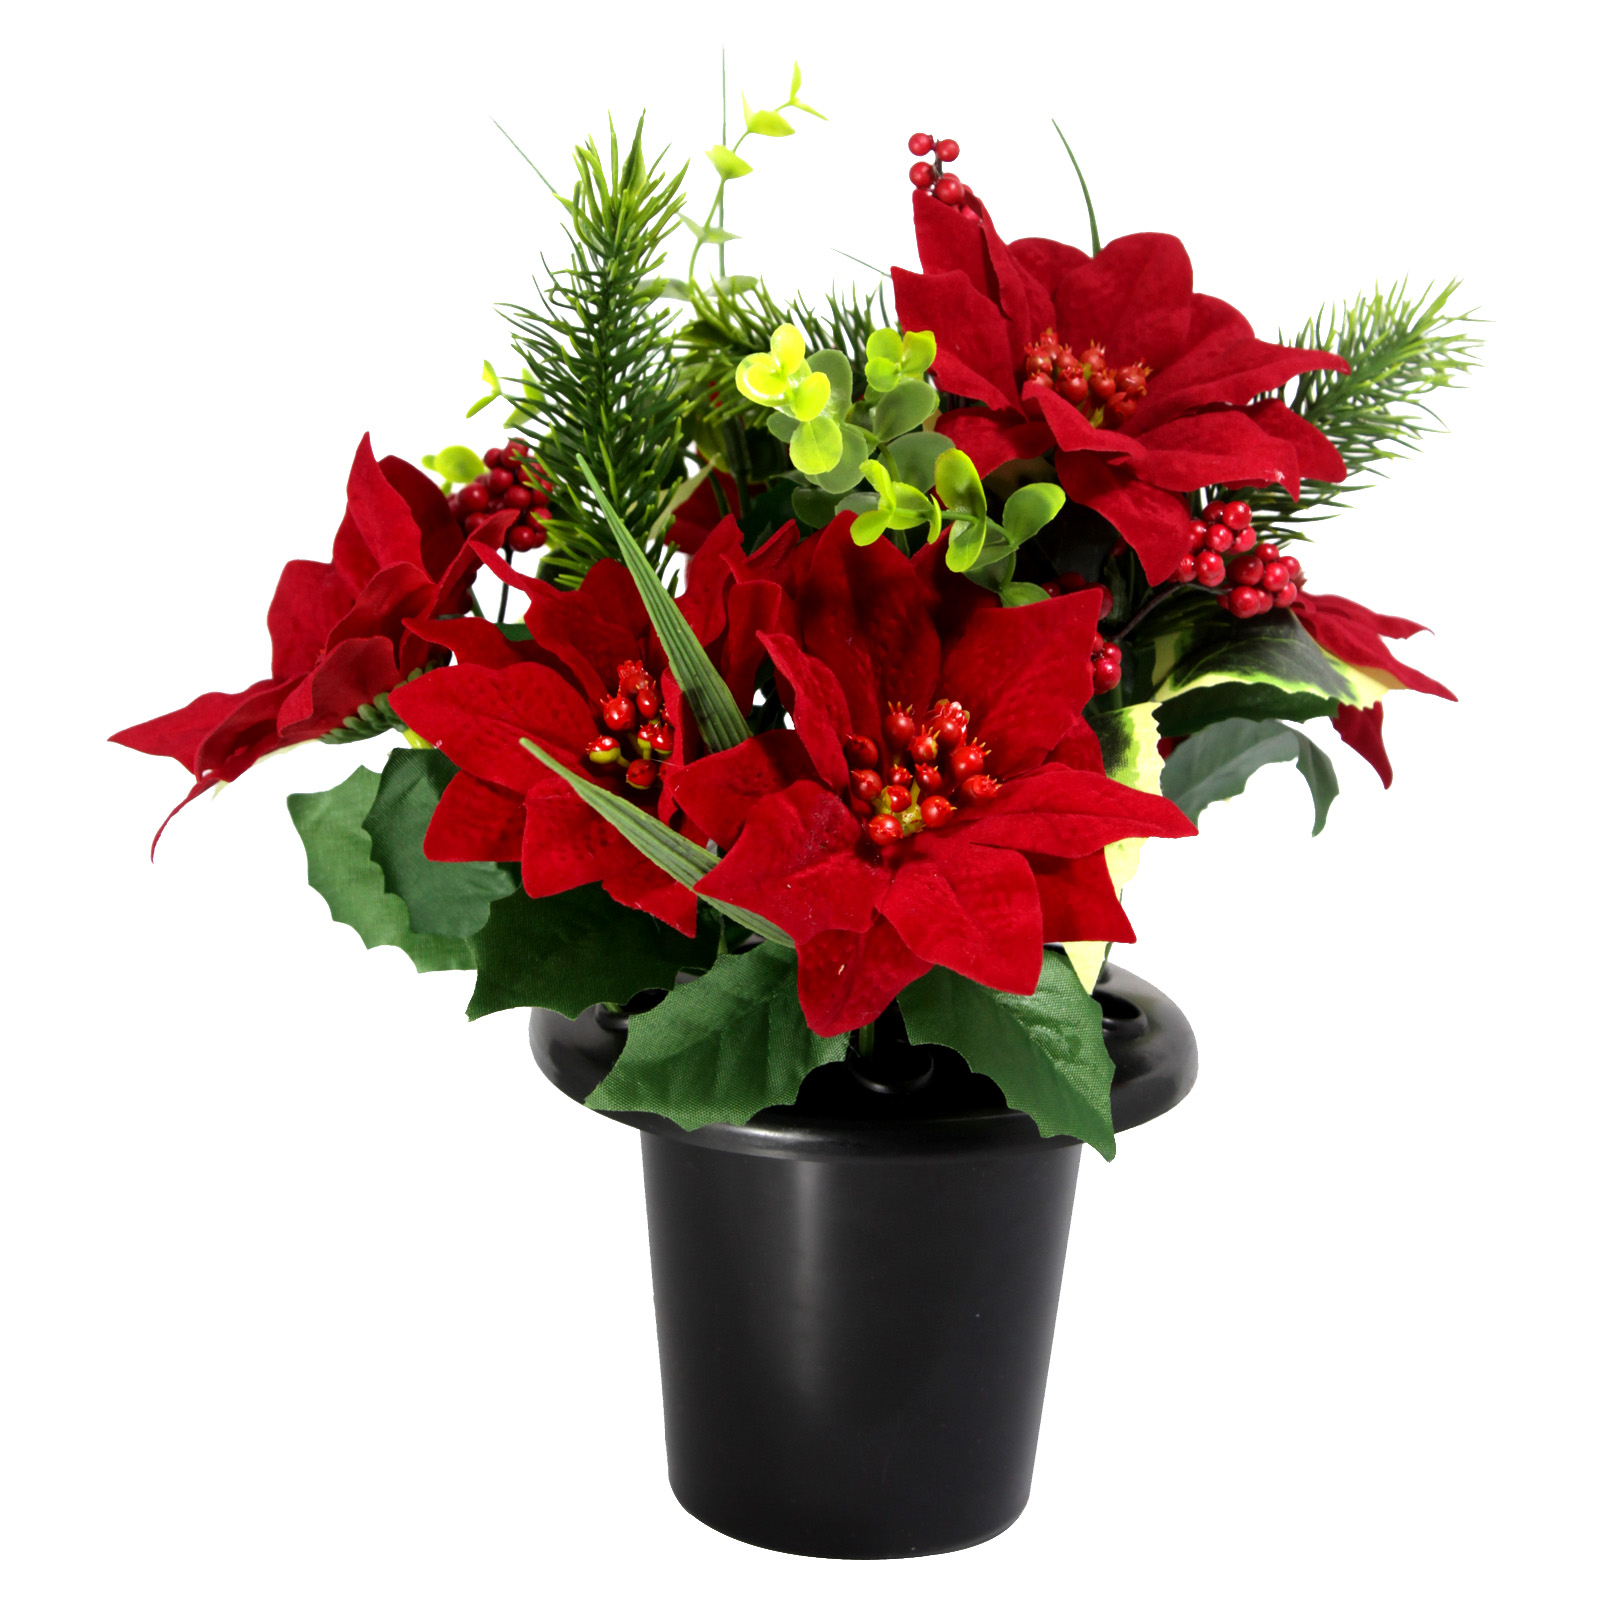 POINSETTIA-HOLLY-PINE CEMETERY POT RED